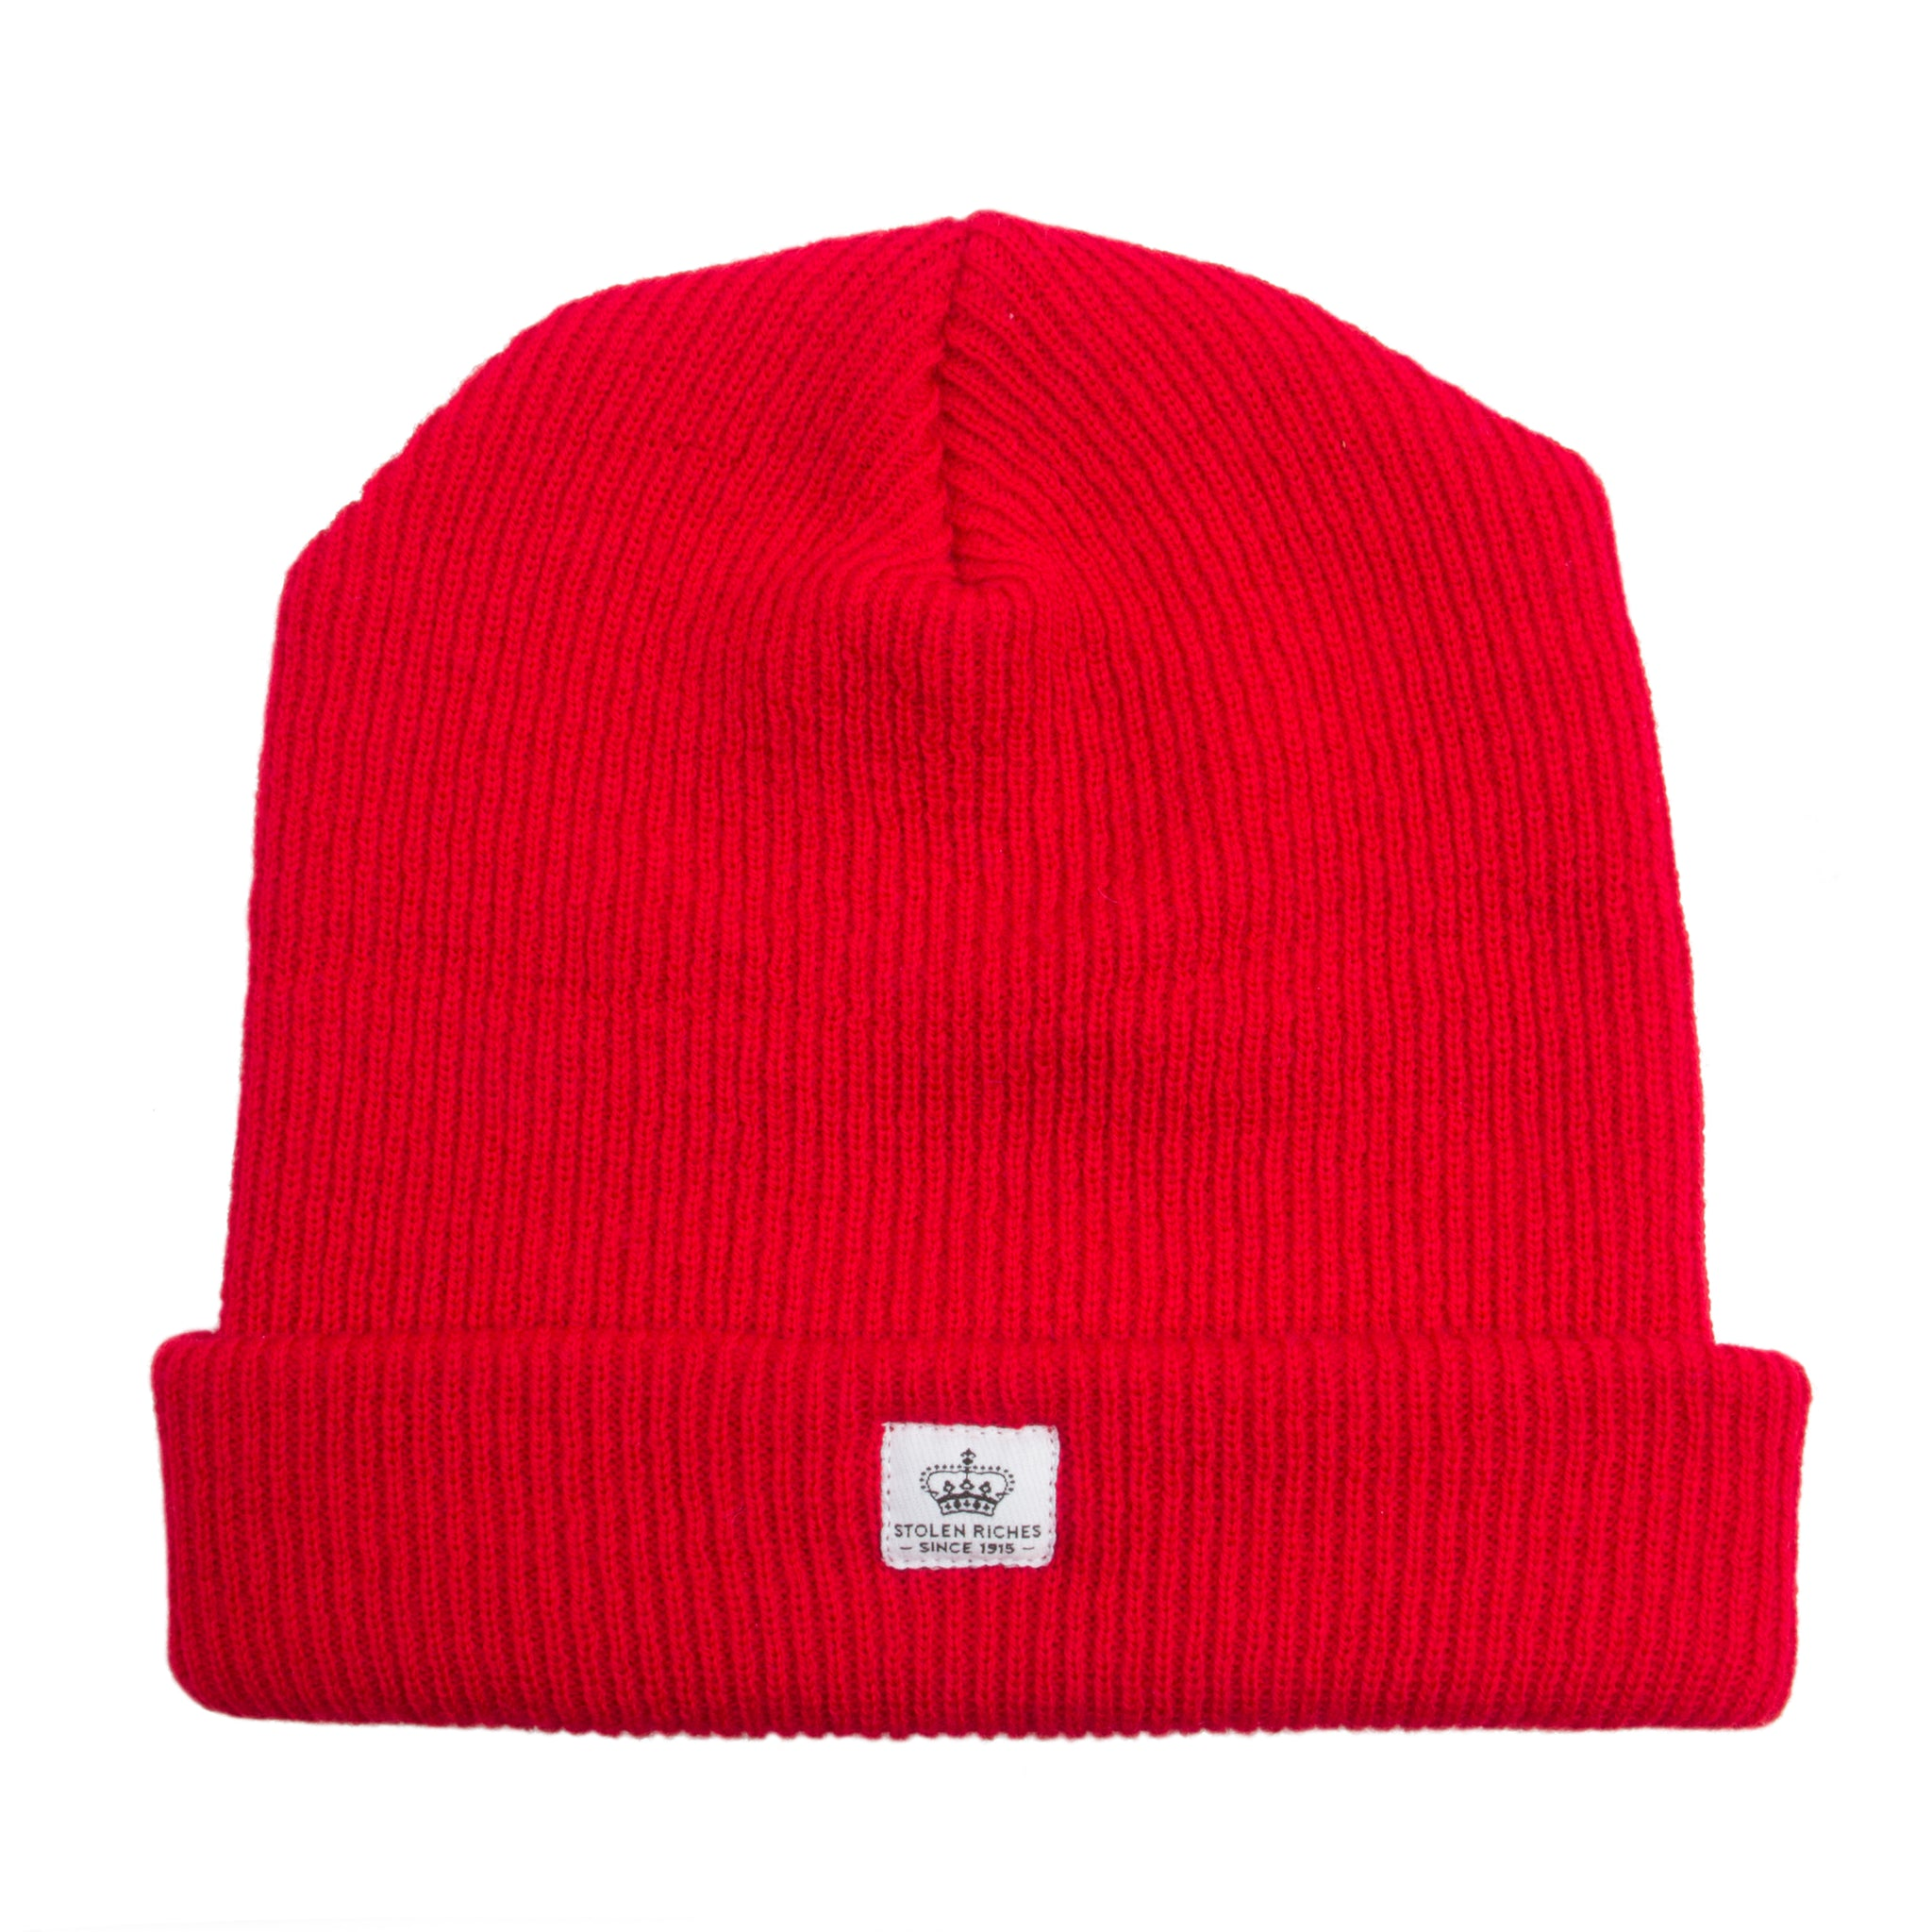 Portsalon Red Wool Toque - Stolen Riches / CA